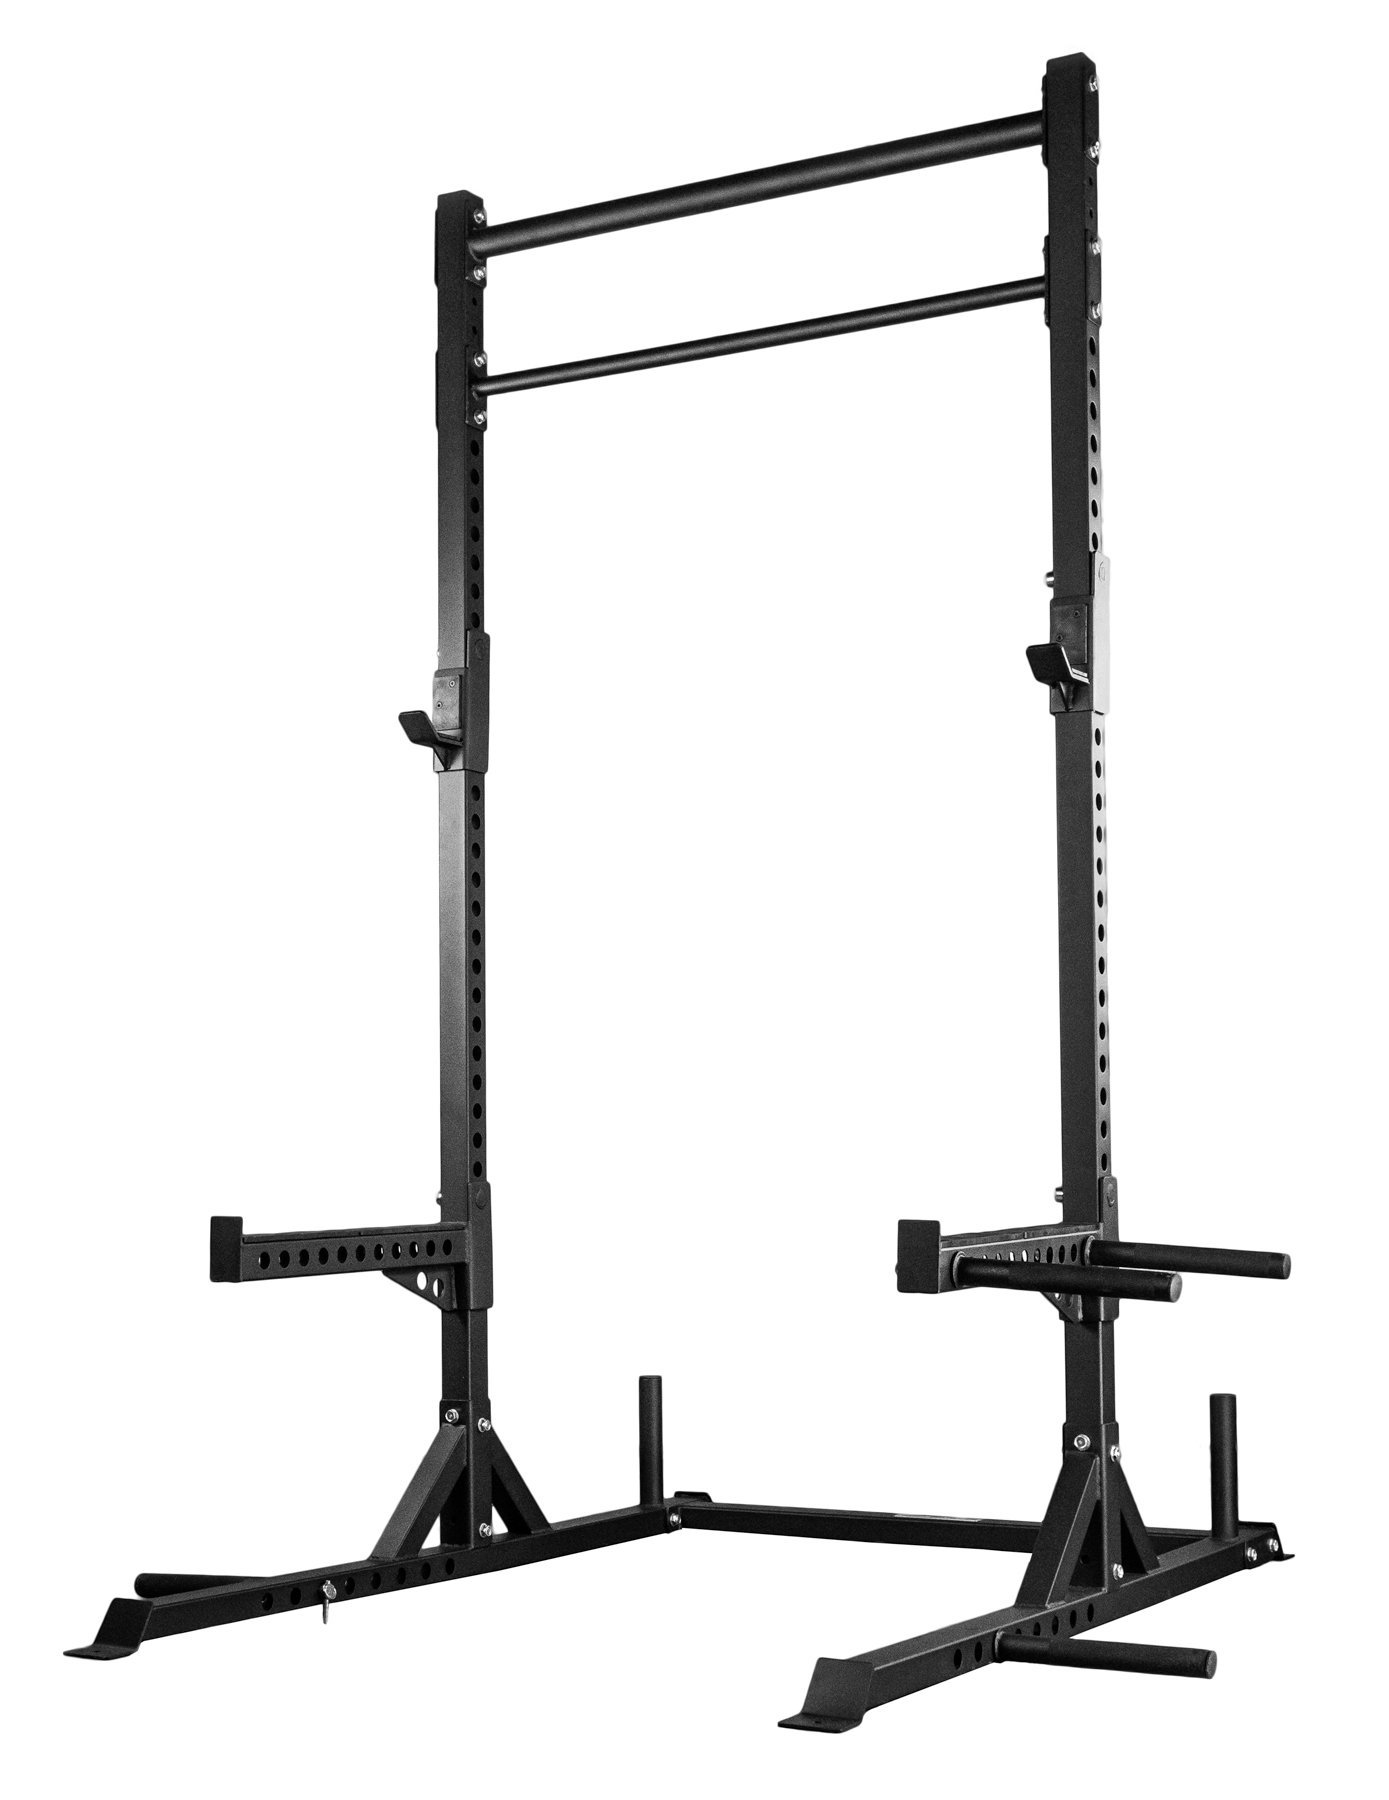 Rep Squat Rack with Pull Up Bar - 110 in